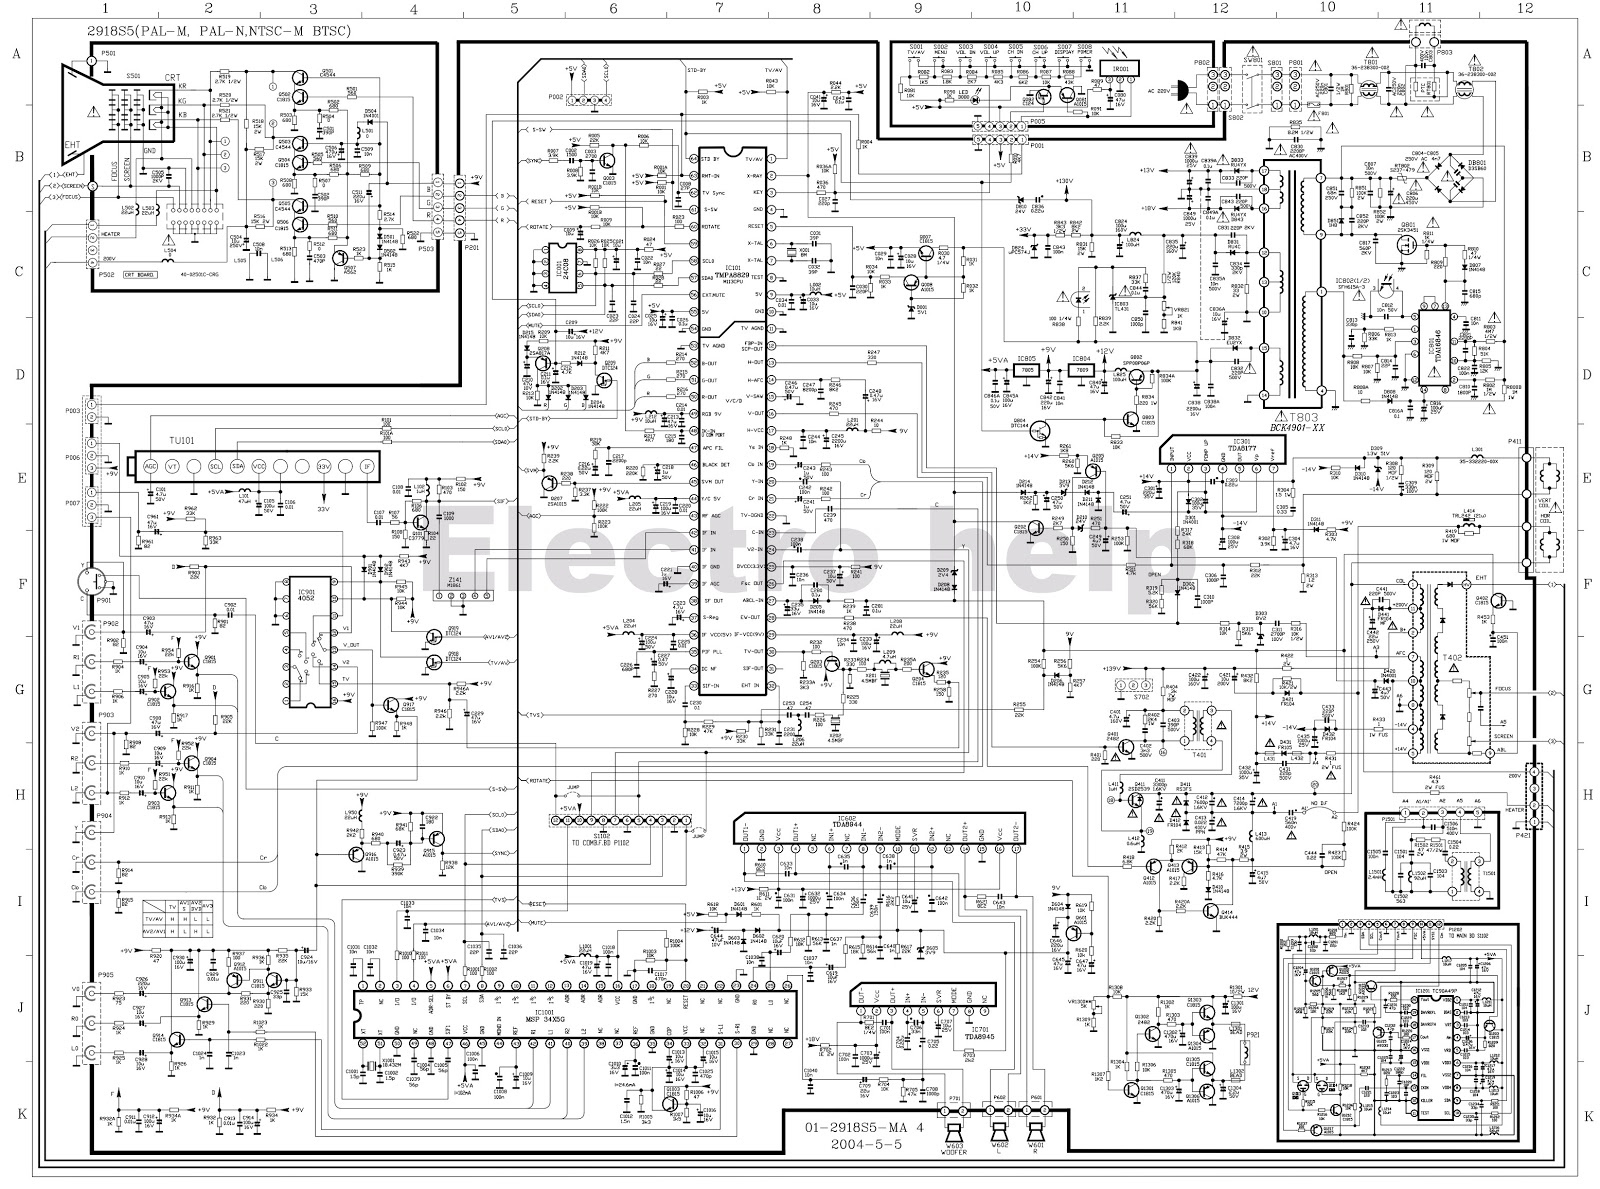 used ics 24c08 tmpa8829 4052 msp34x5g tda8944 tda8945 tc90a49p manguonblog colour tv kit circuit diagram  [ 1600 x 1189 Pixel ]